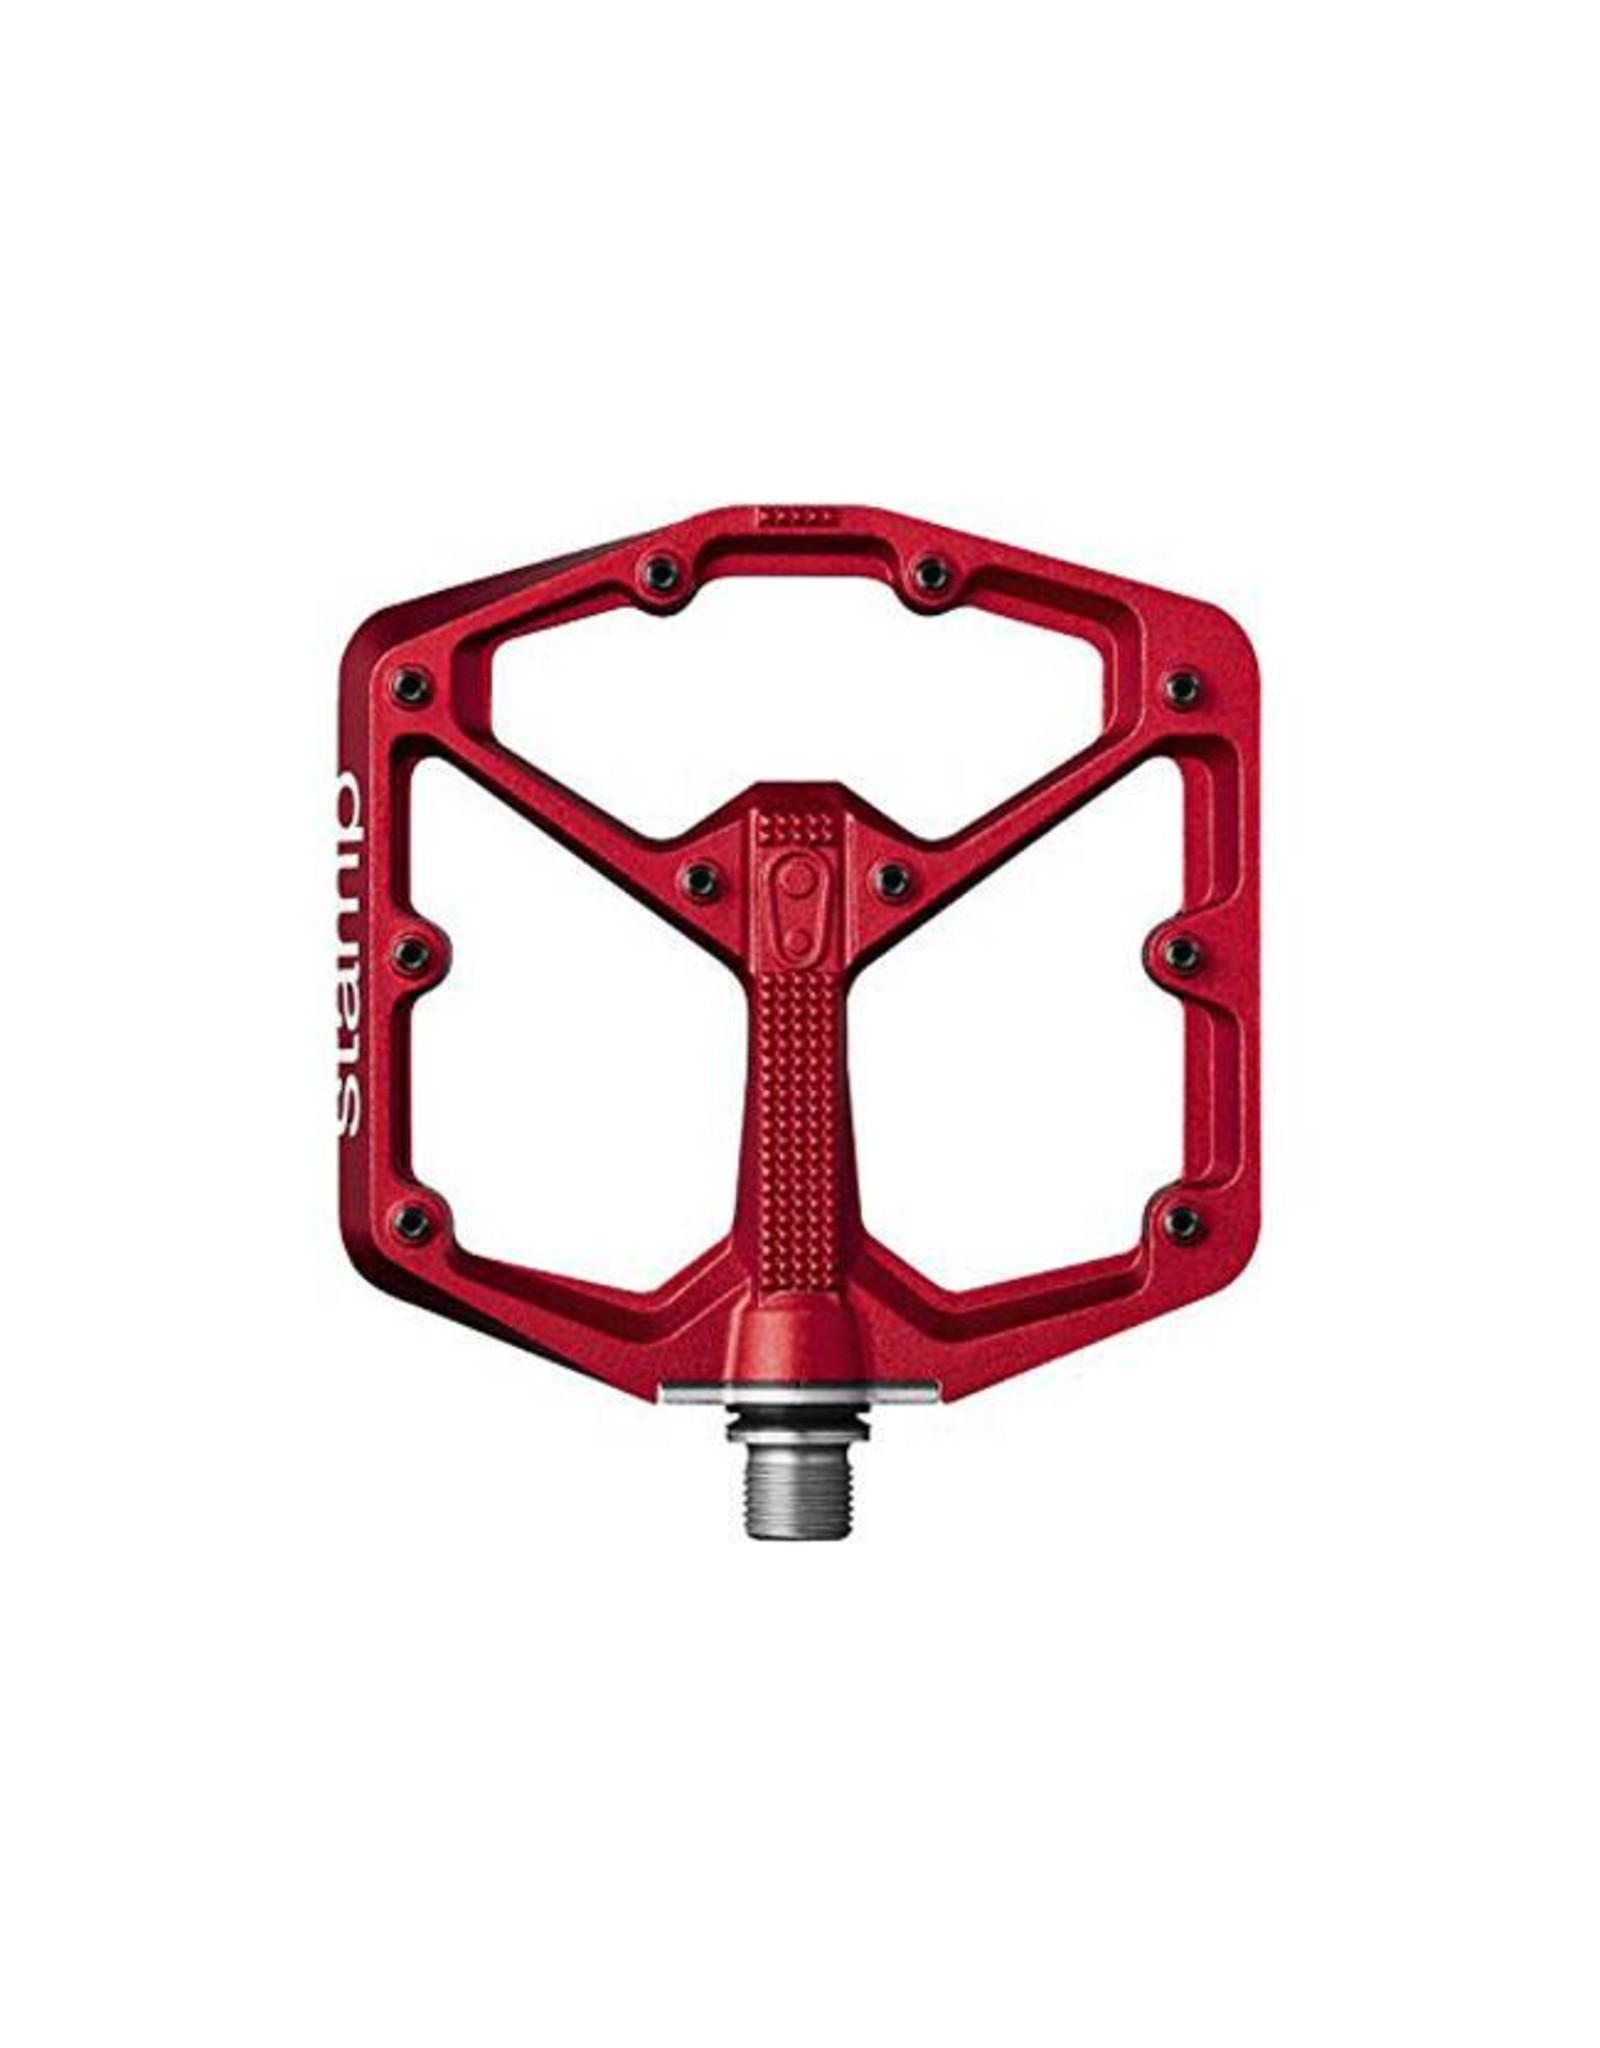 Crank Brothers Crank Brothers Stamp 7 Large Pedals: Red